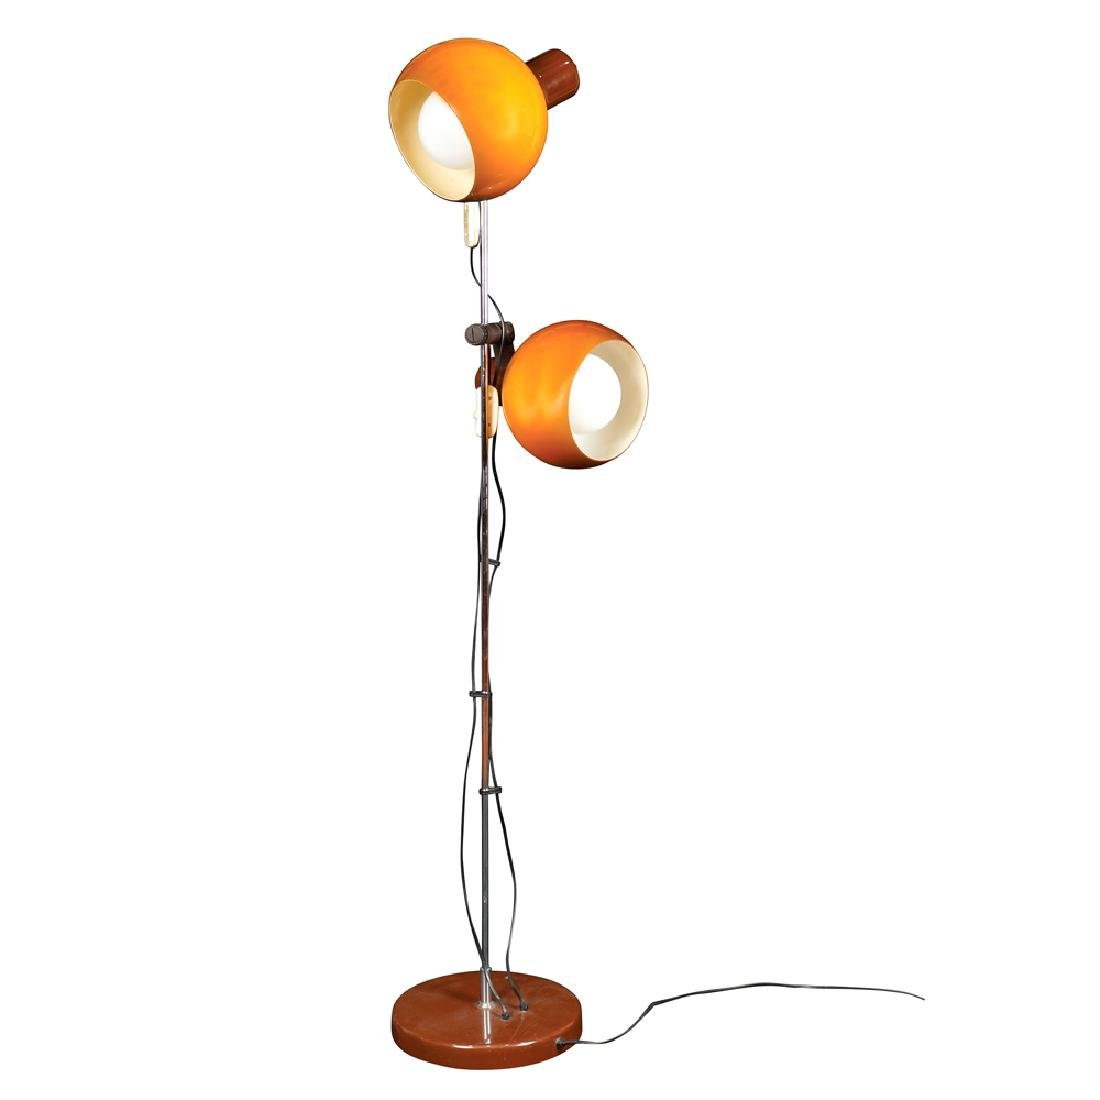 A design floor lamp 20th century h. 150 cm.